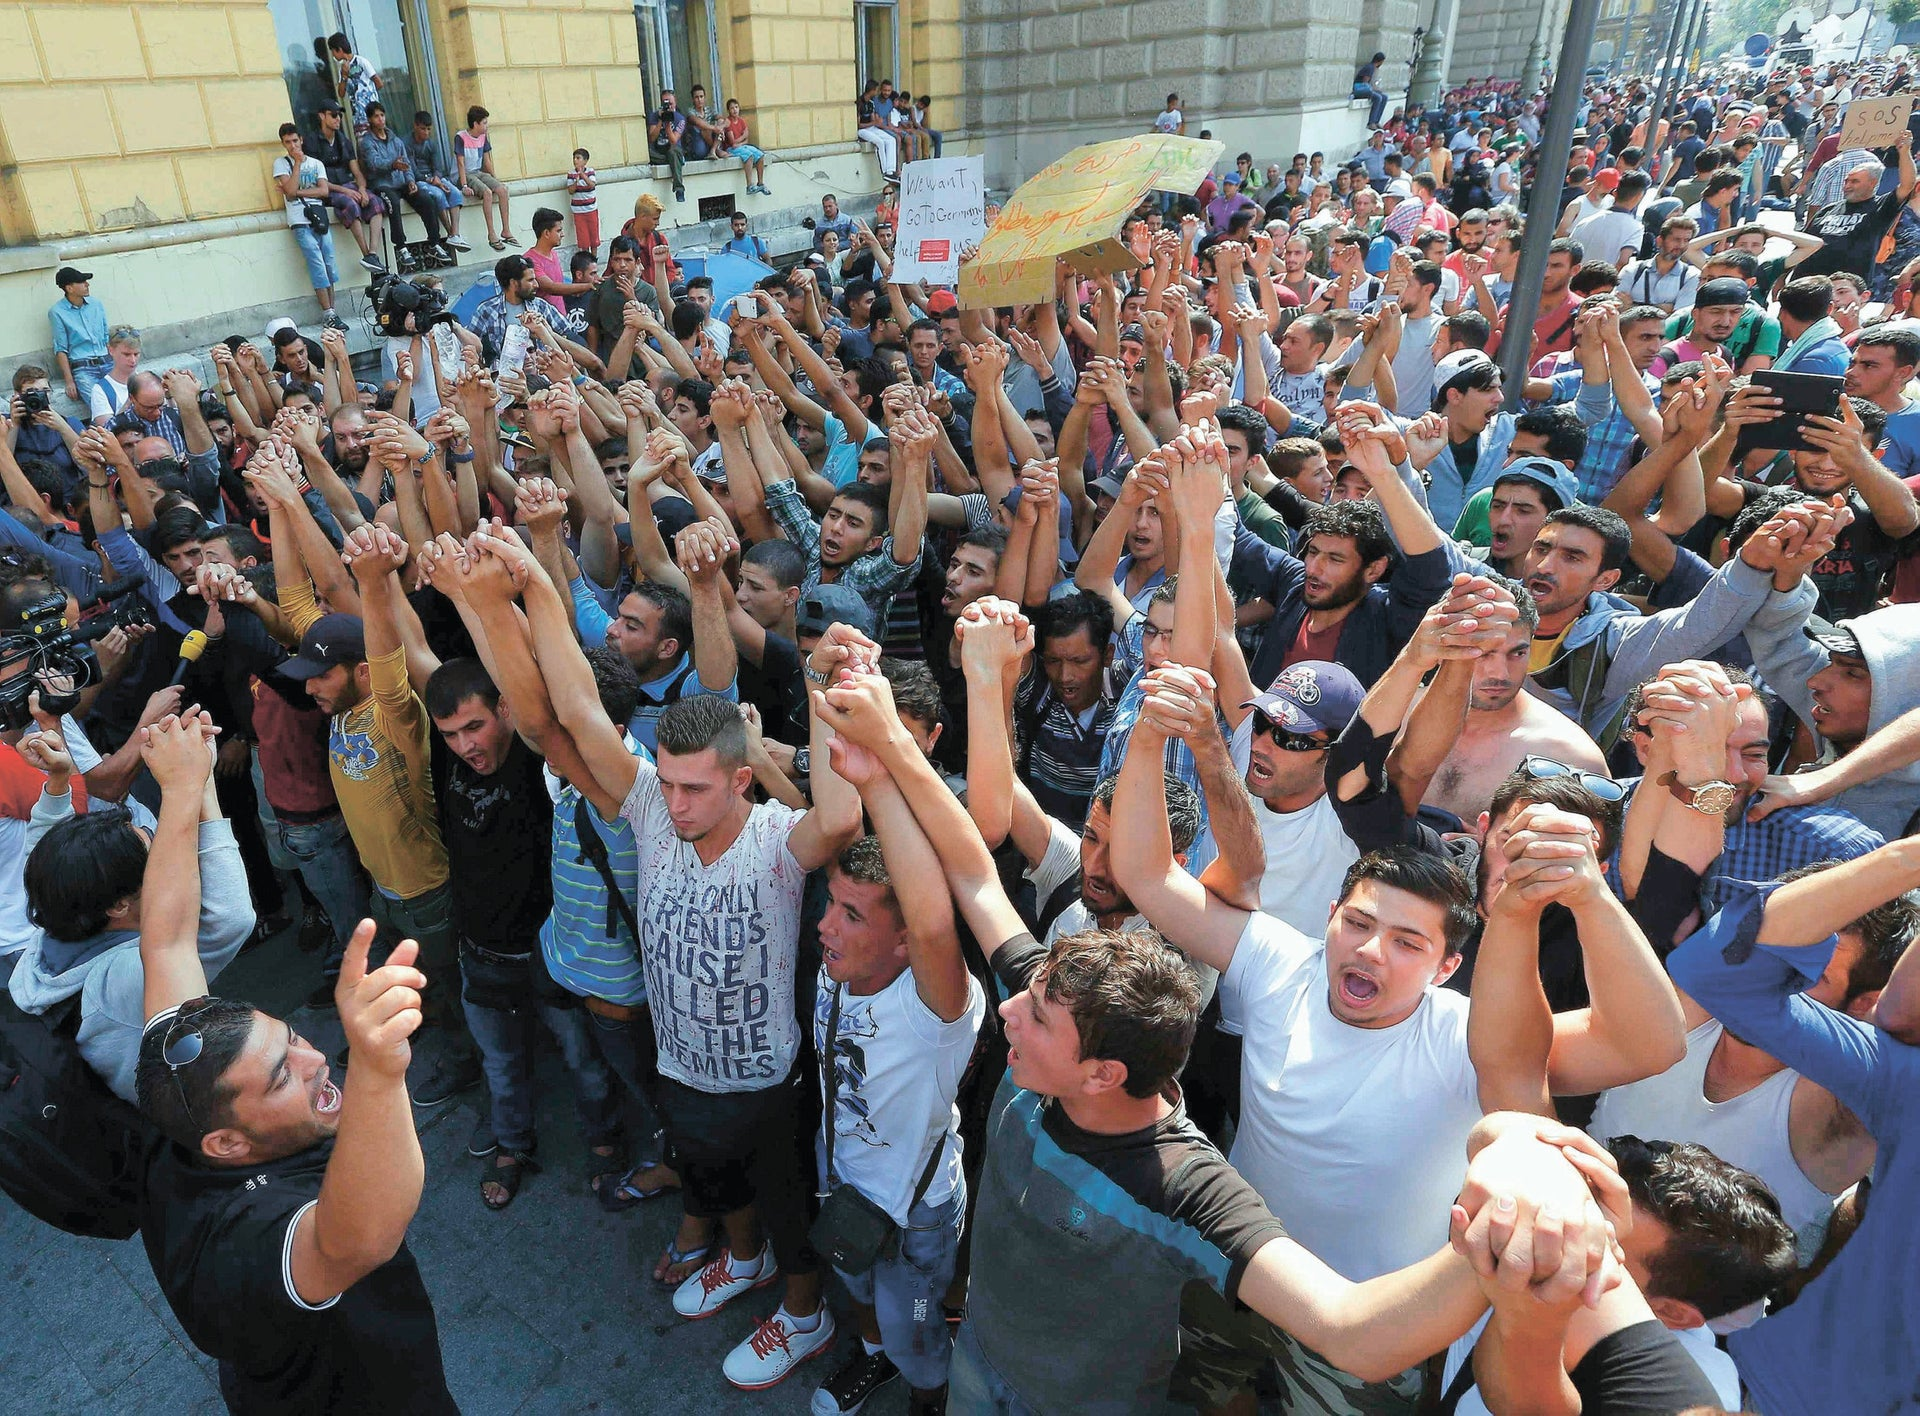 """Migrants protest outside the Eastern railway station in Budapest, Hungary, September 2, 2015. Hundreds of migrants protested in front of Budapest's Eastern railway station on Wednesday, shouting """"Freedom, freedom"""" and demanding to be let onto trains bound for Germany but the station remained closed to them. More than 2,000 migrants, including families with children."""